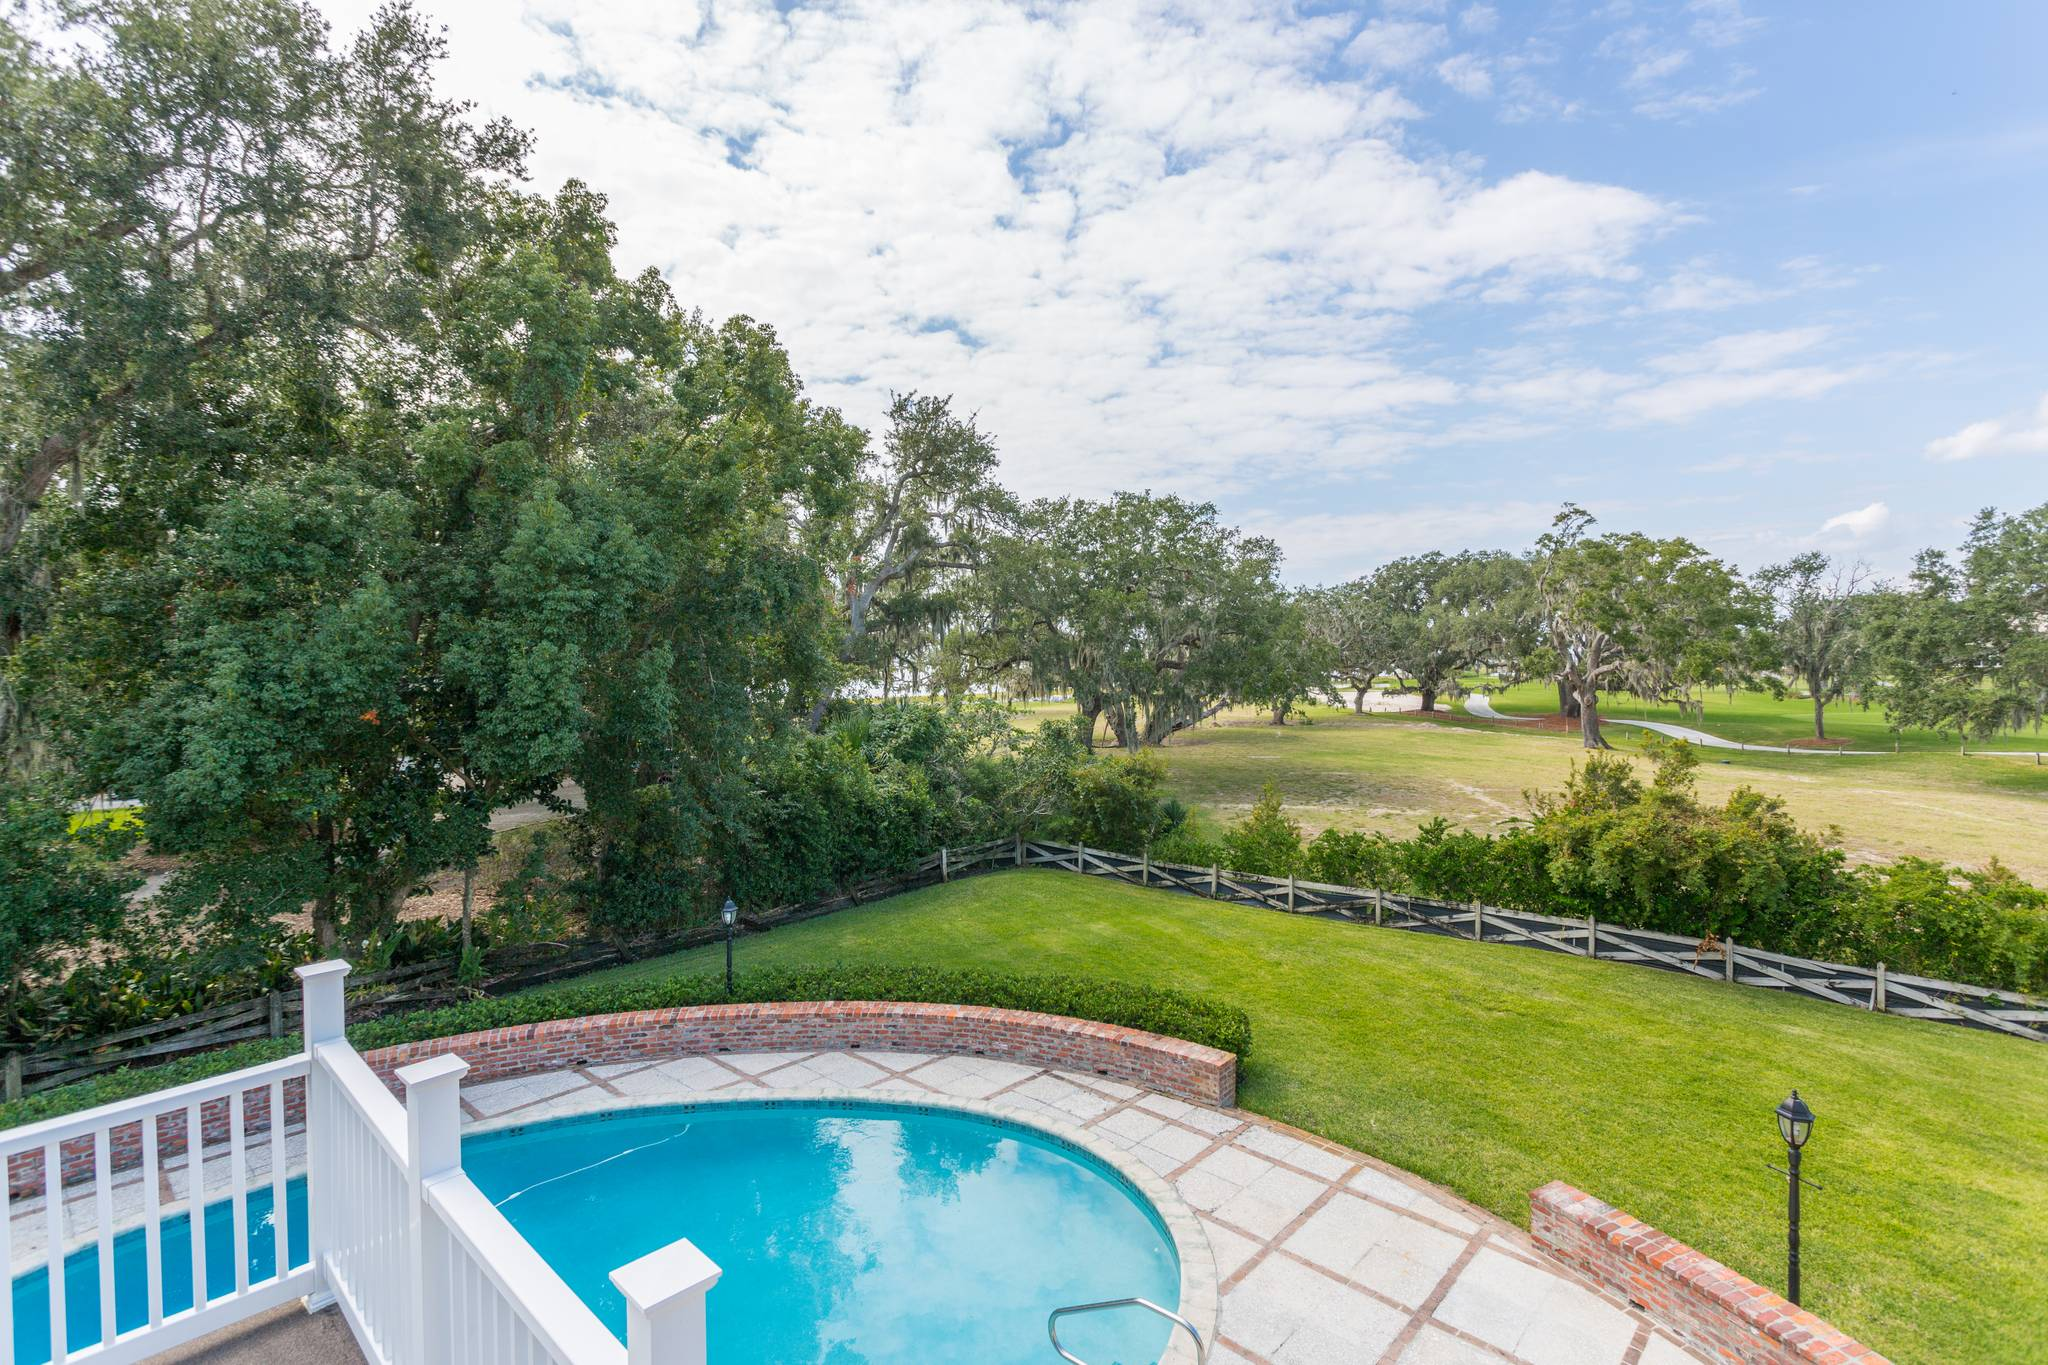 Deck View at 154 Gould St on St Simons Island